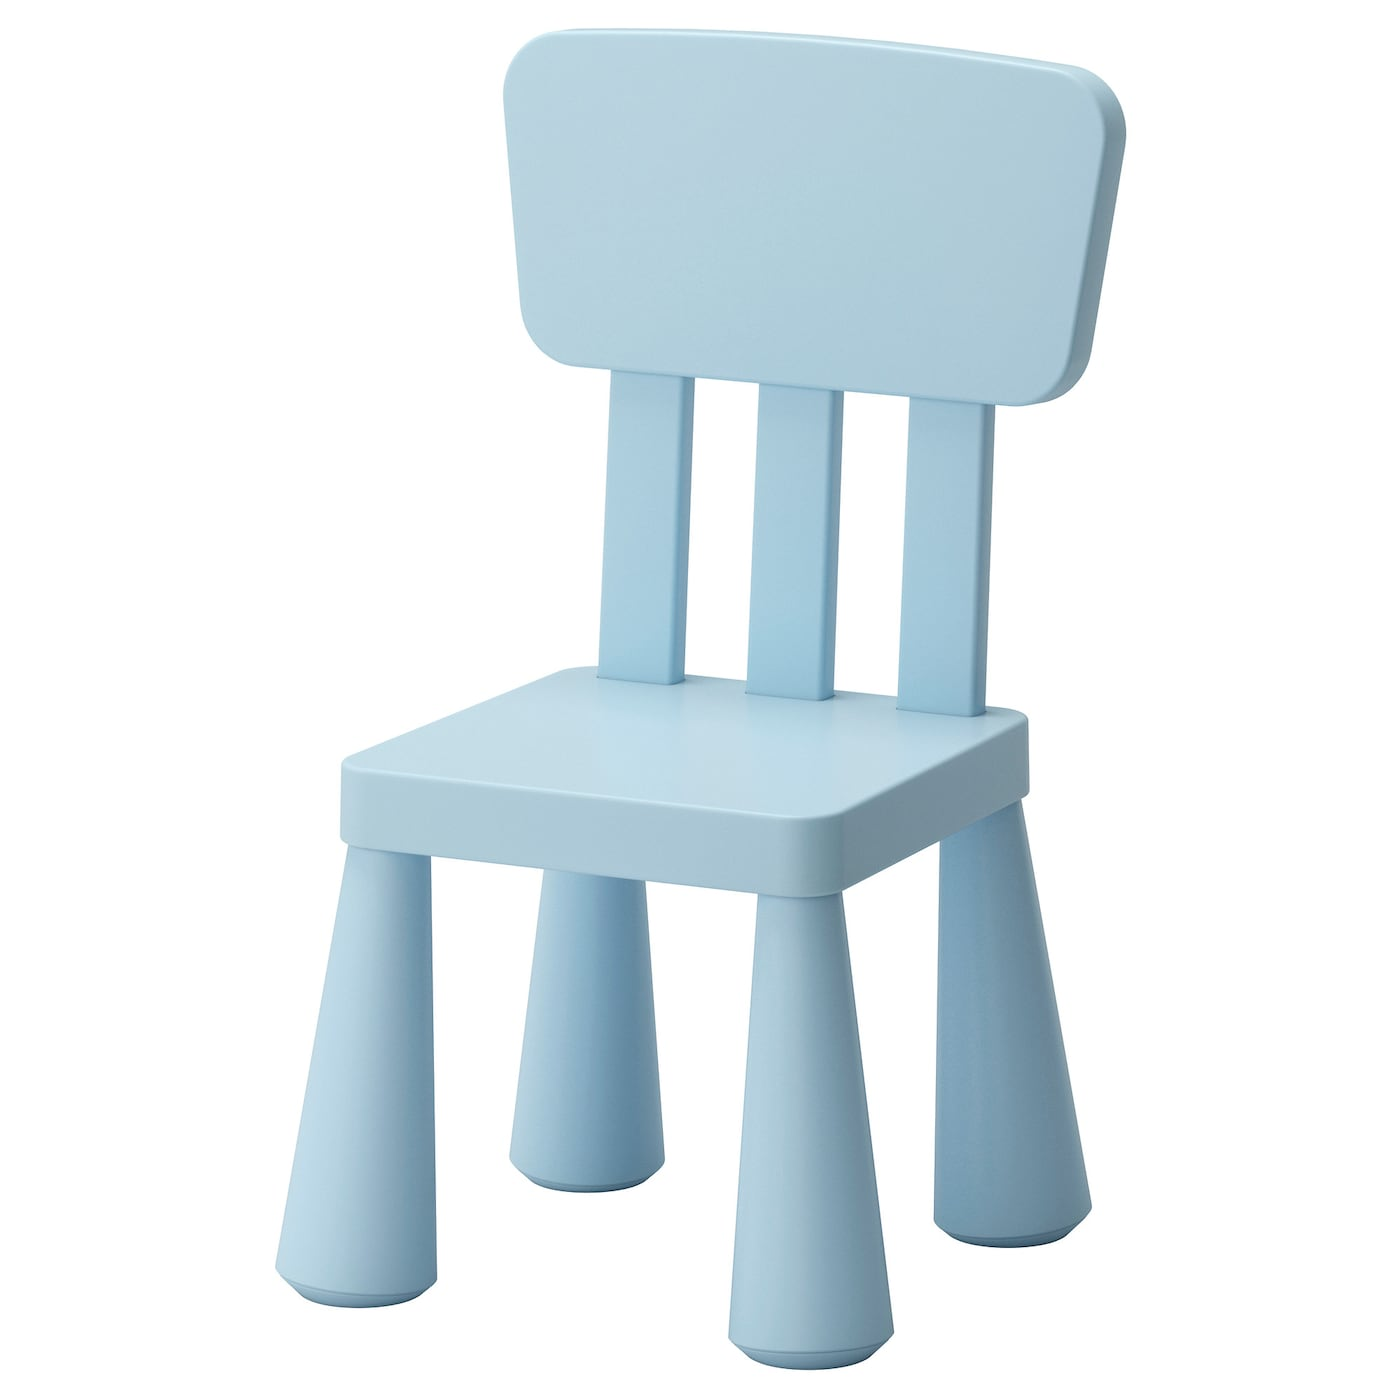 Mammut children 39 s chair in outdoor light blue ikea for Small chair for kid